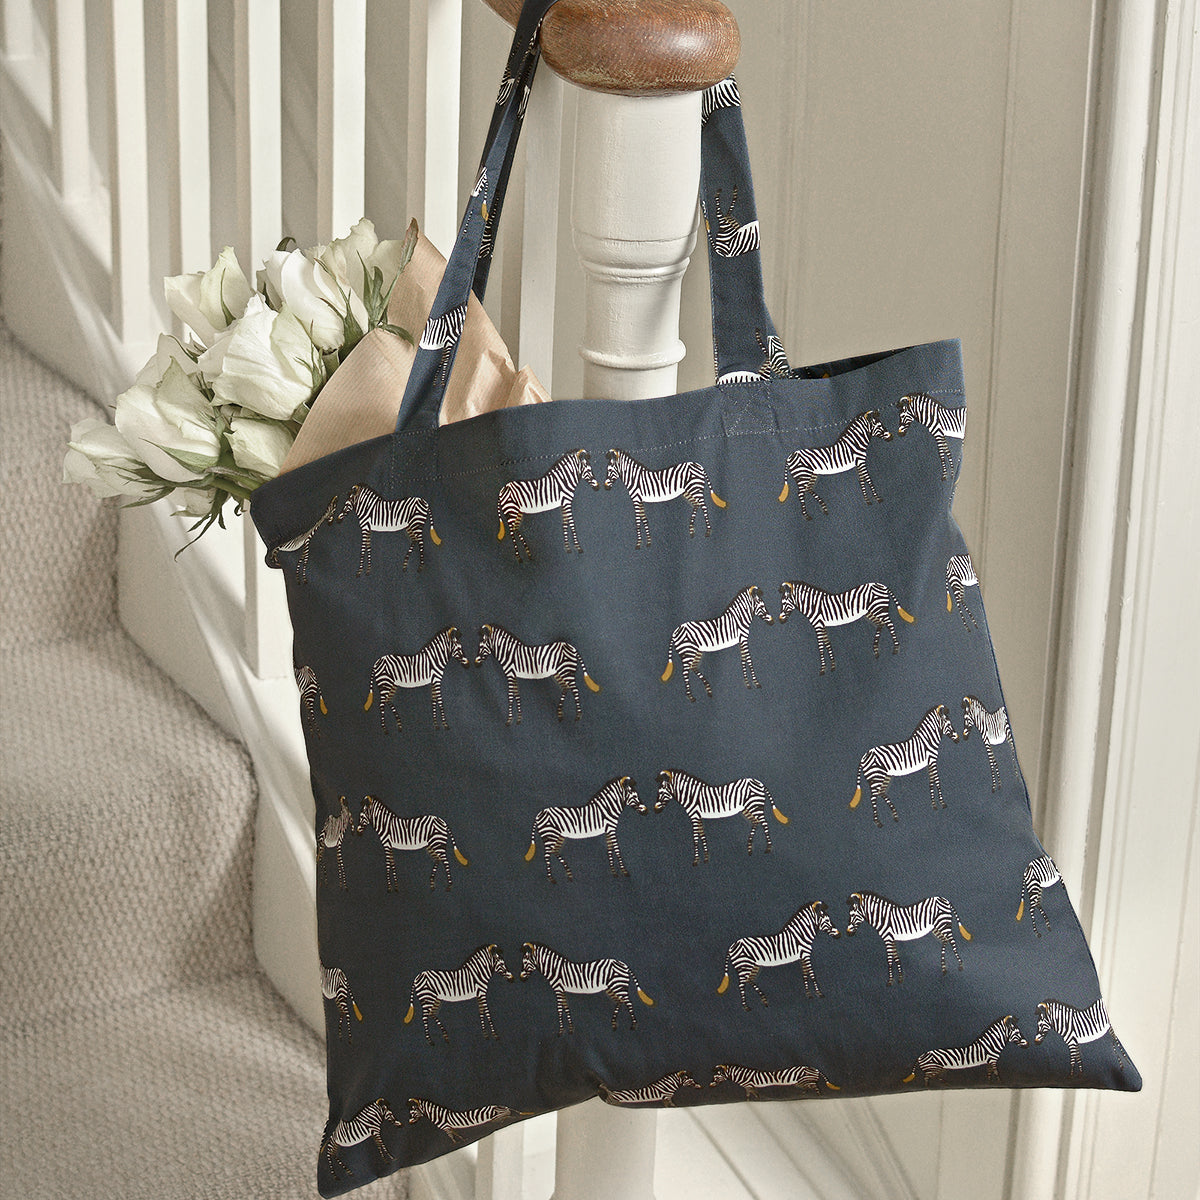 Zebra Folding Shopping Bag